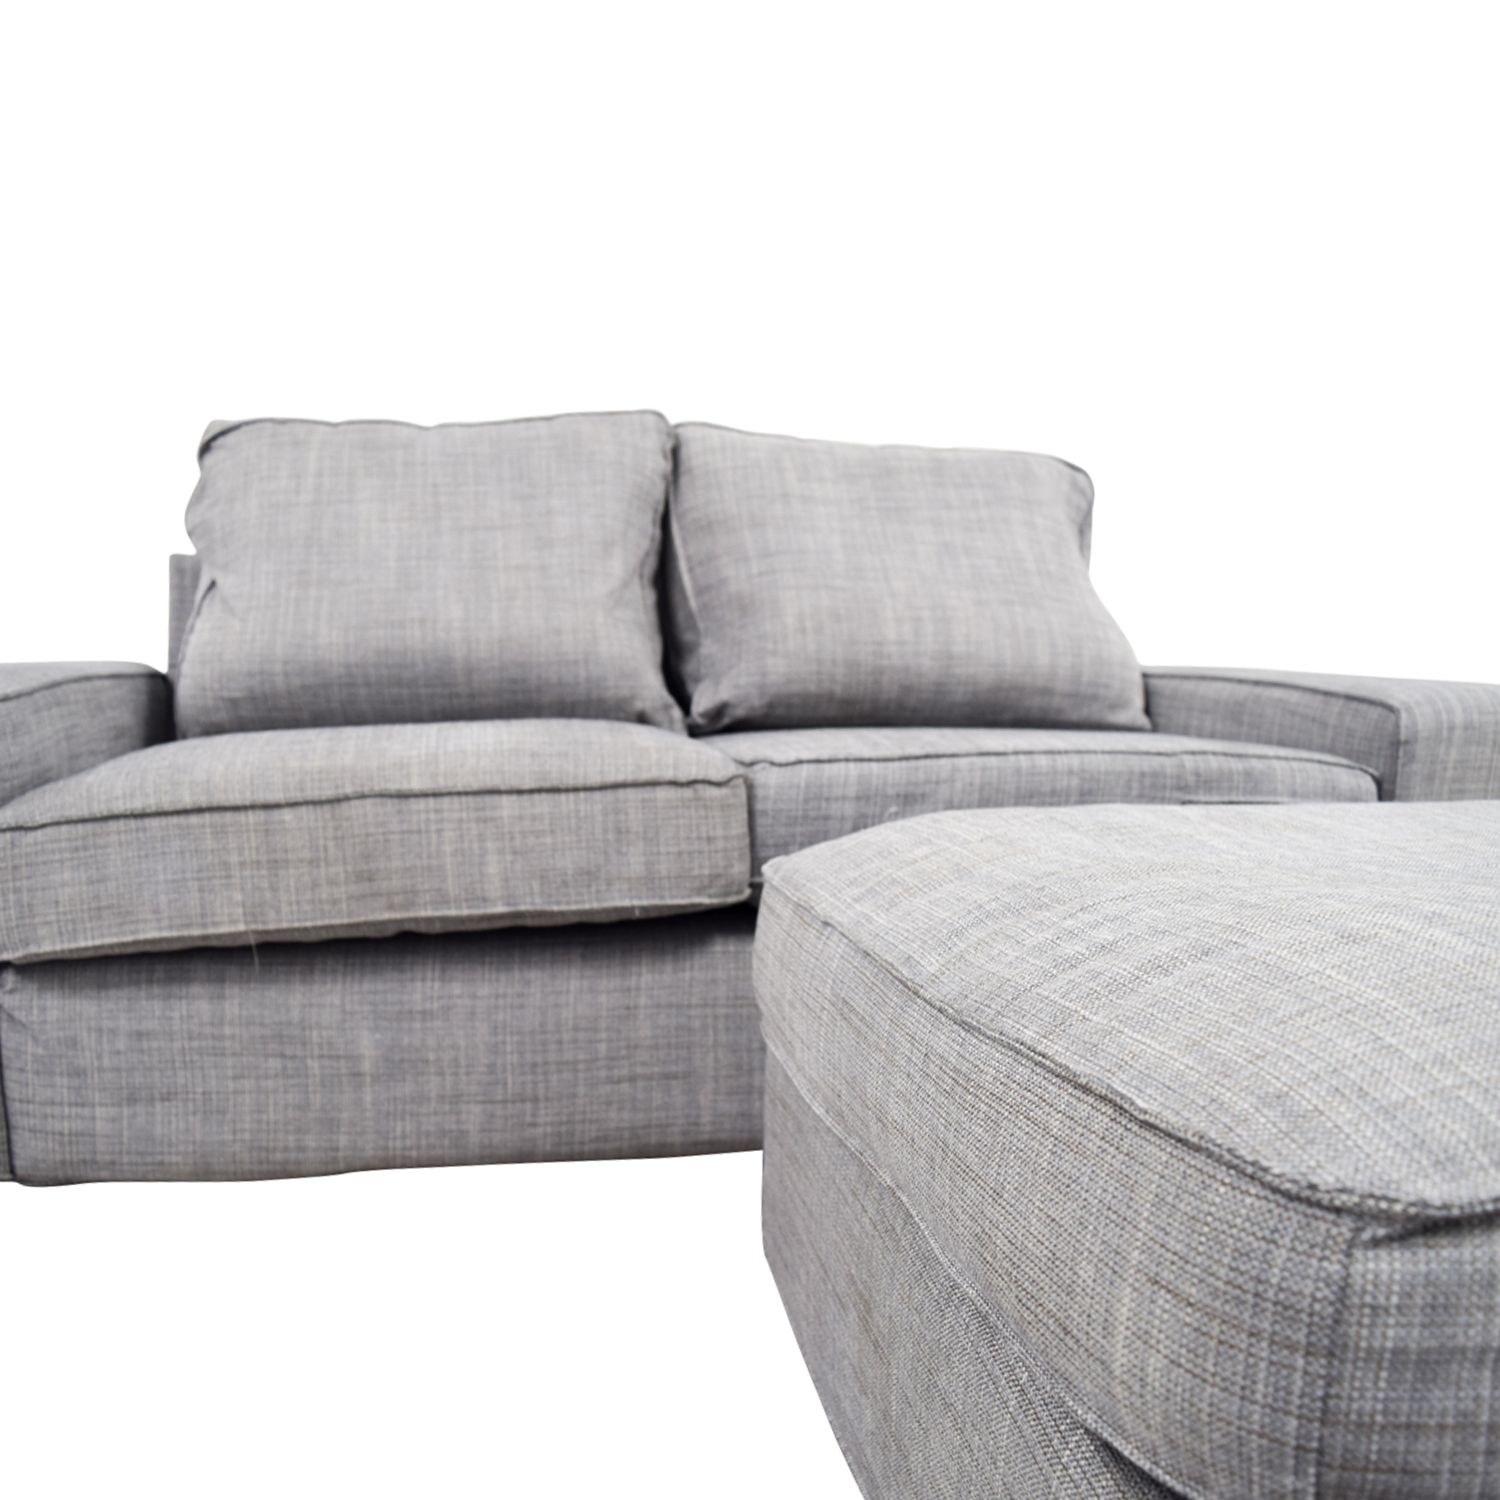 Off Ikea Kivik Gray Sofa And Ottoman Sofas